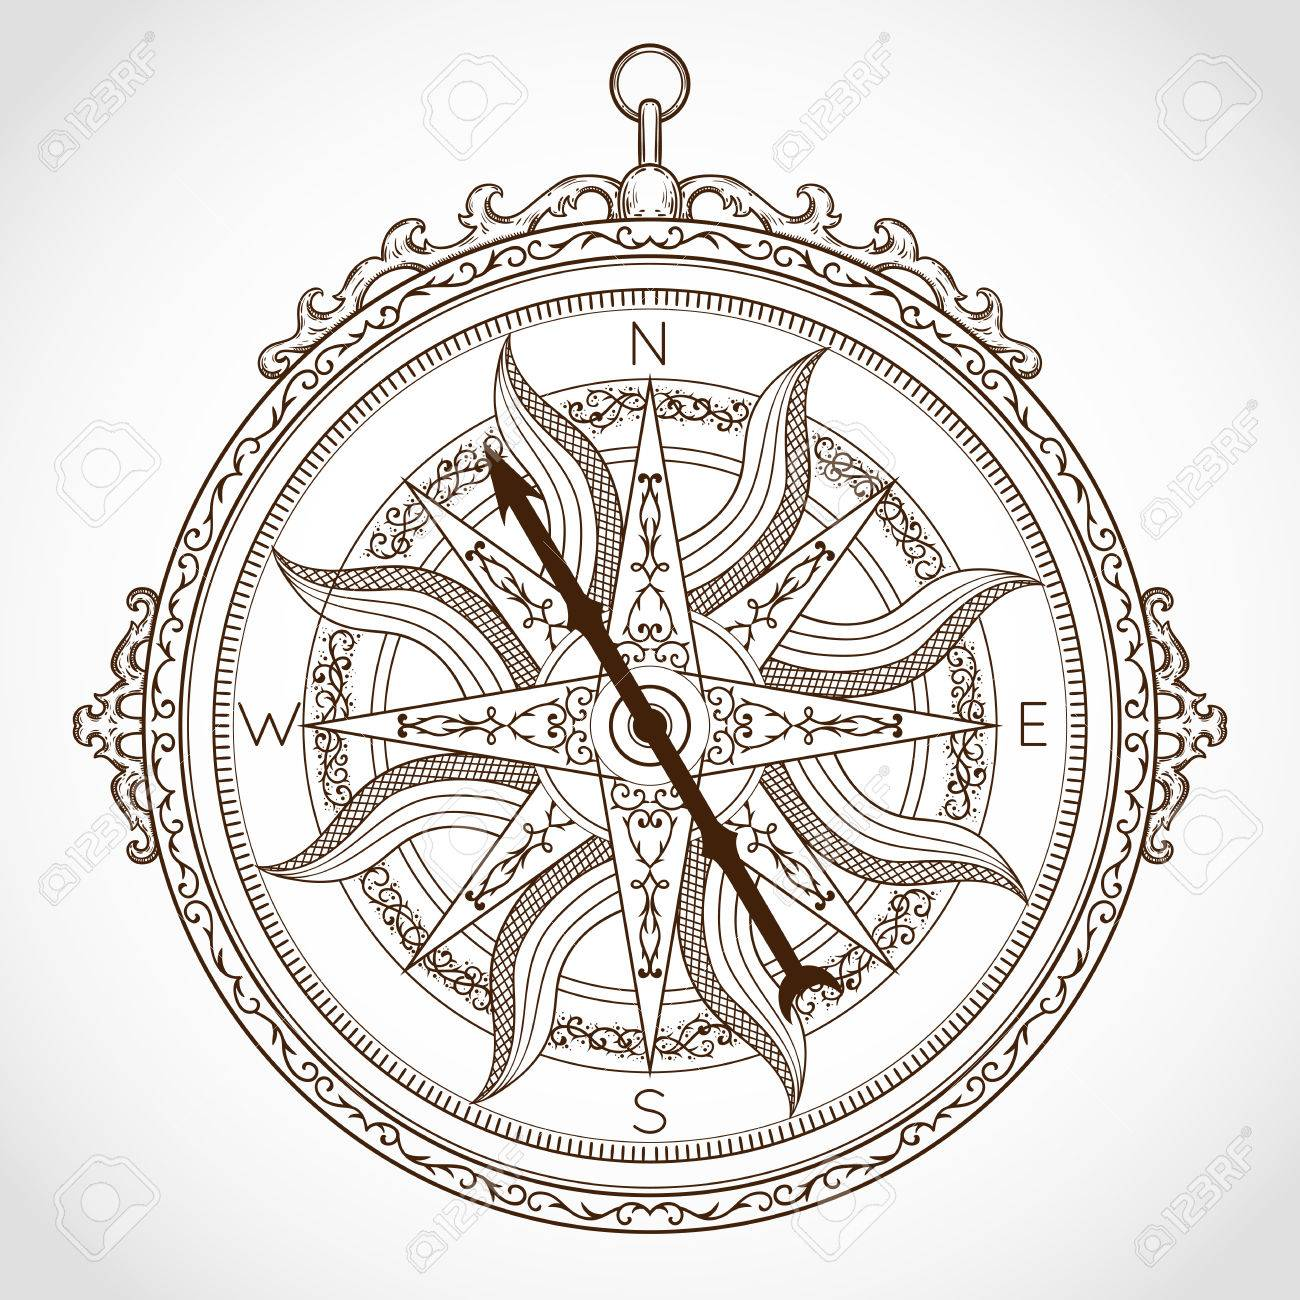 Vintage Compass On White Background Isolated Element In Line